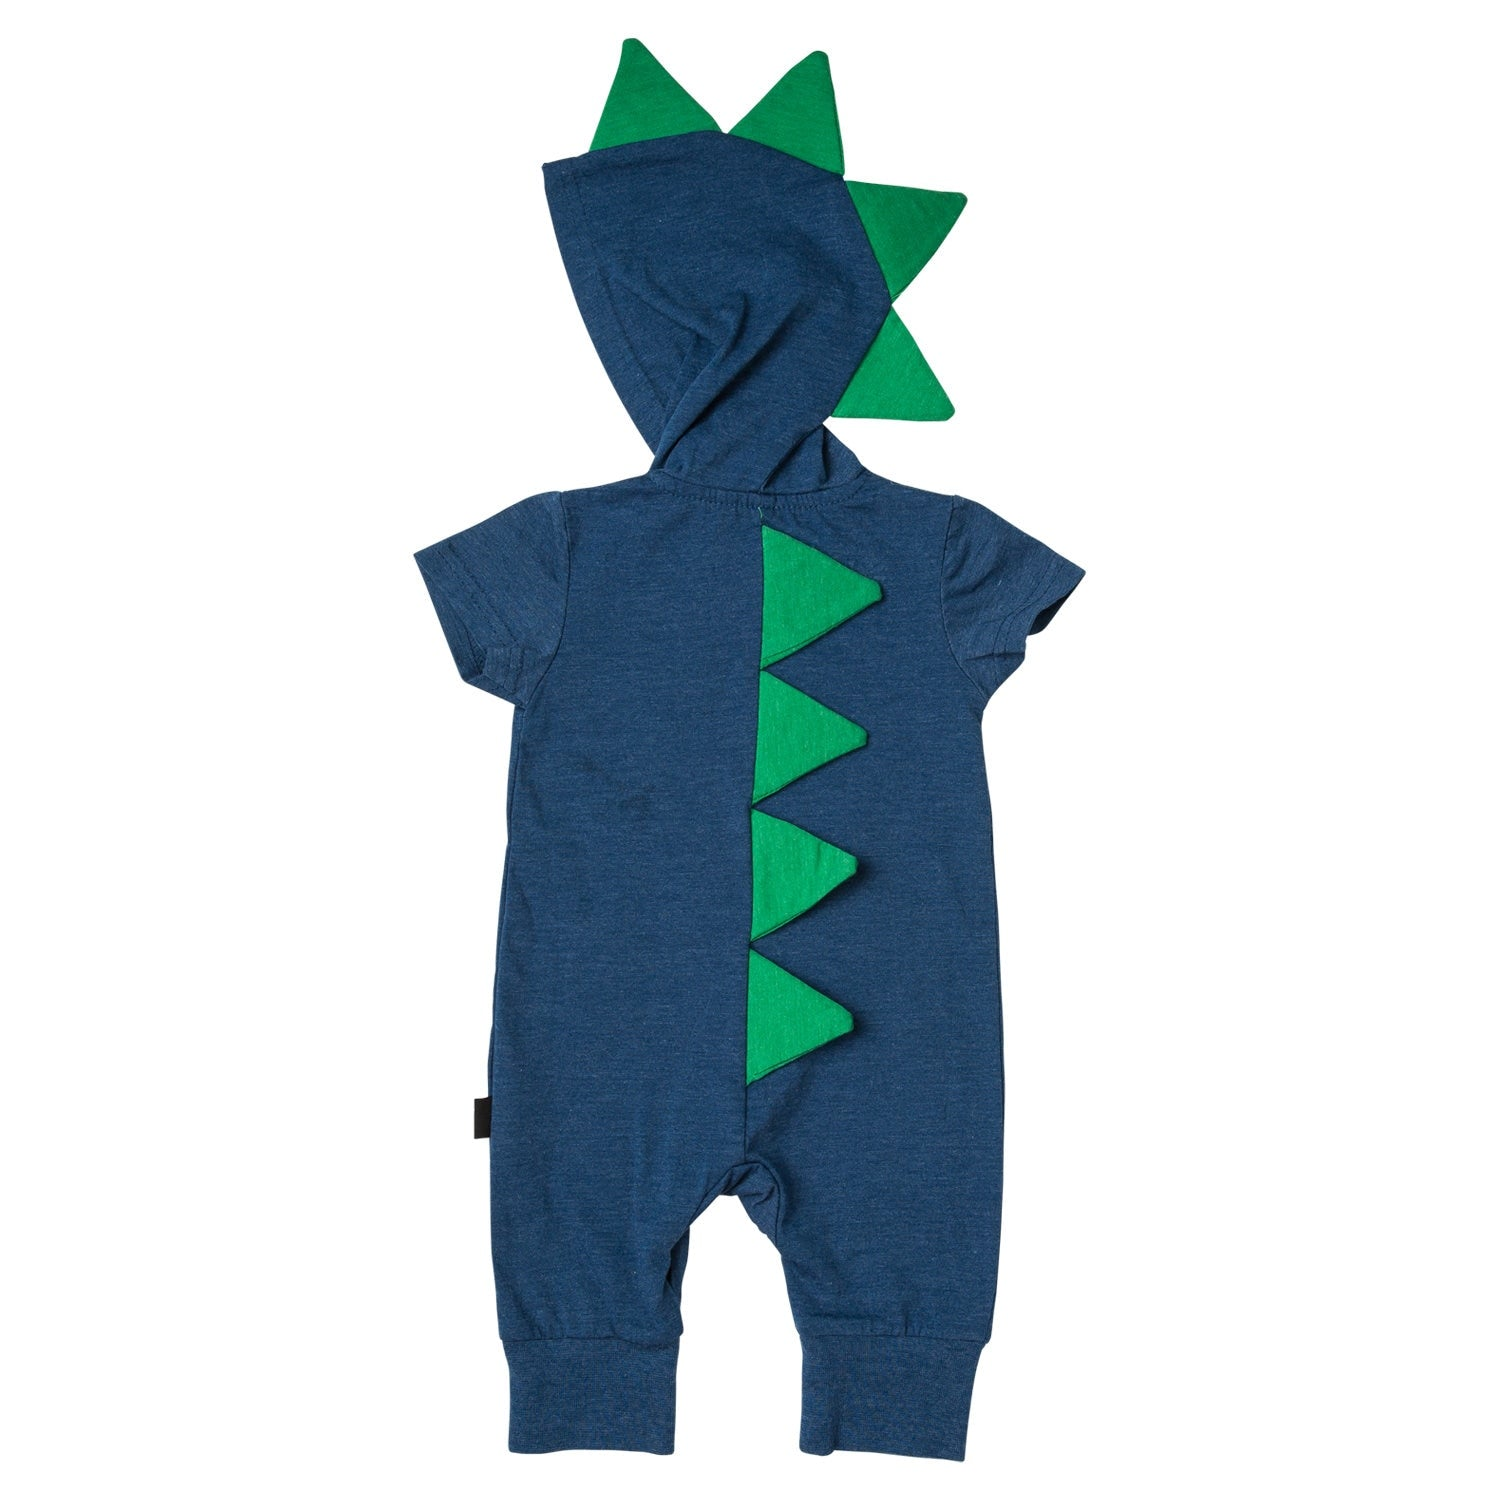 ssdinor-nvy-navy-green-short-sleeve-dino-hoodie-romper-back.jpg